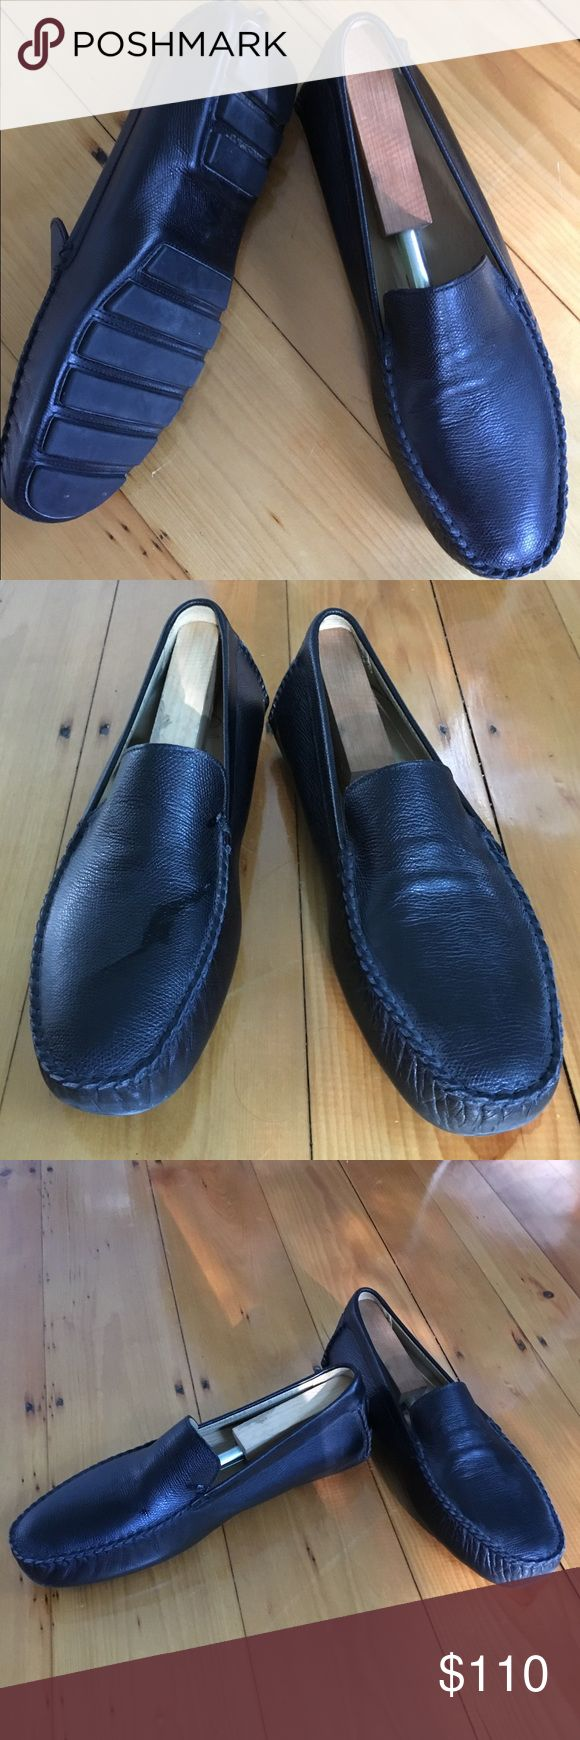 EUC Cole Haan Size 9 Men's Leather Slip-on Shoe Gorgeous (worn once to a rehearsal dinner) Cole Haan Made In Italy black genuine leather slip on loafer. Beautiful black leather in fabulous condition! Cole Haan Shoes Loafers & Slip-Ons